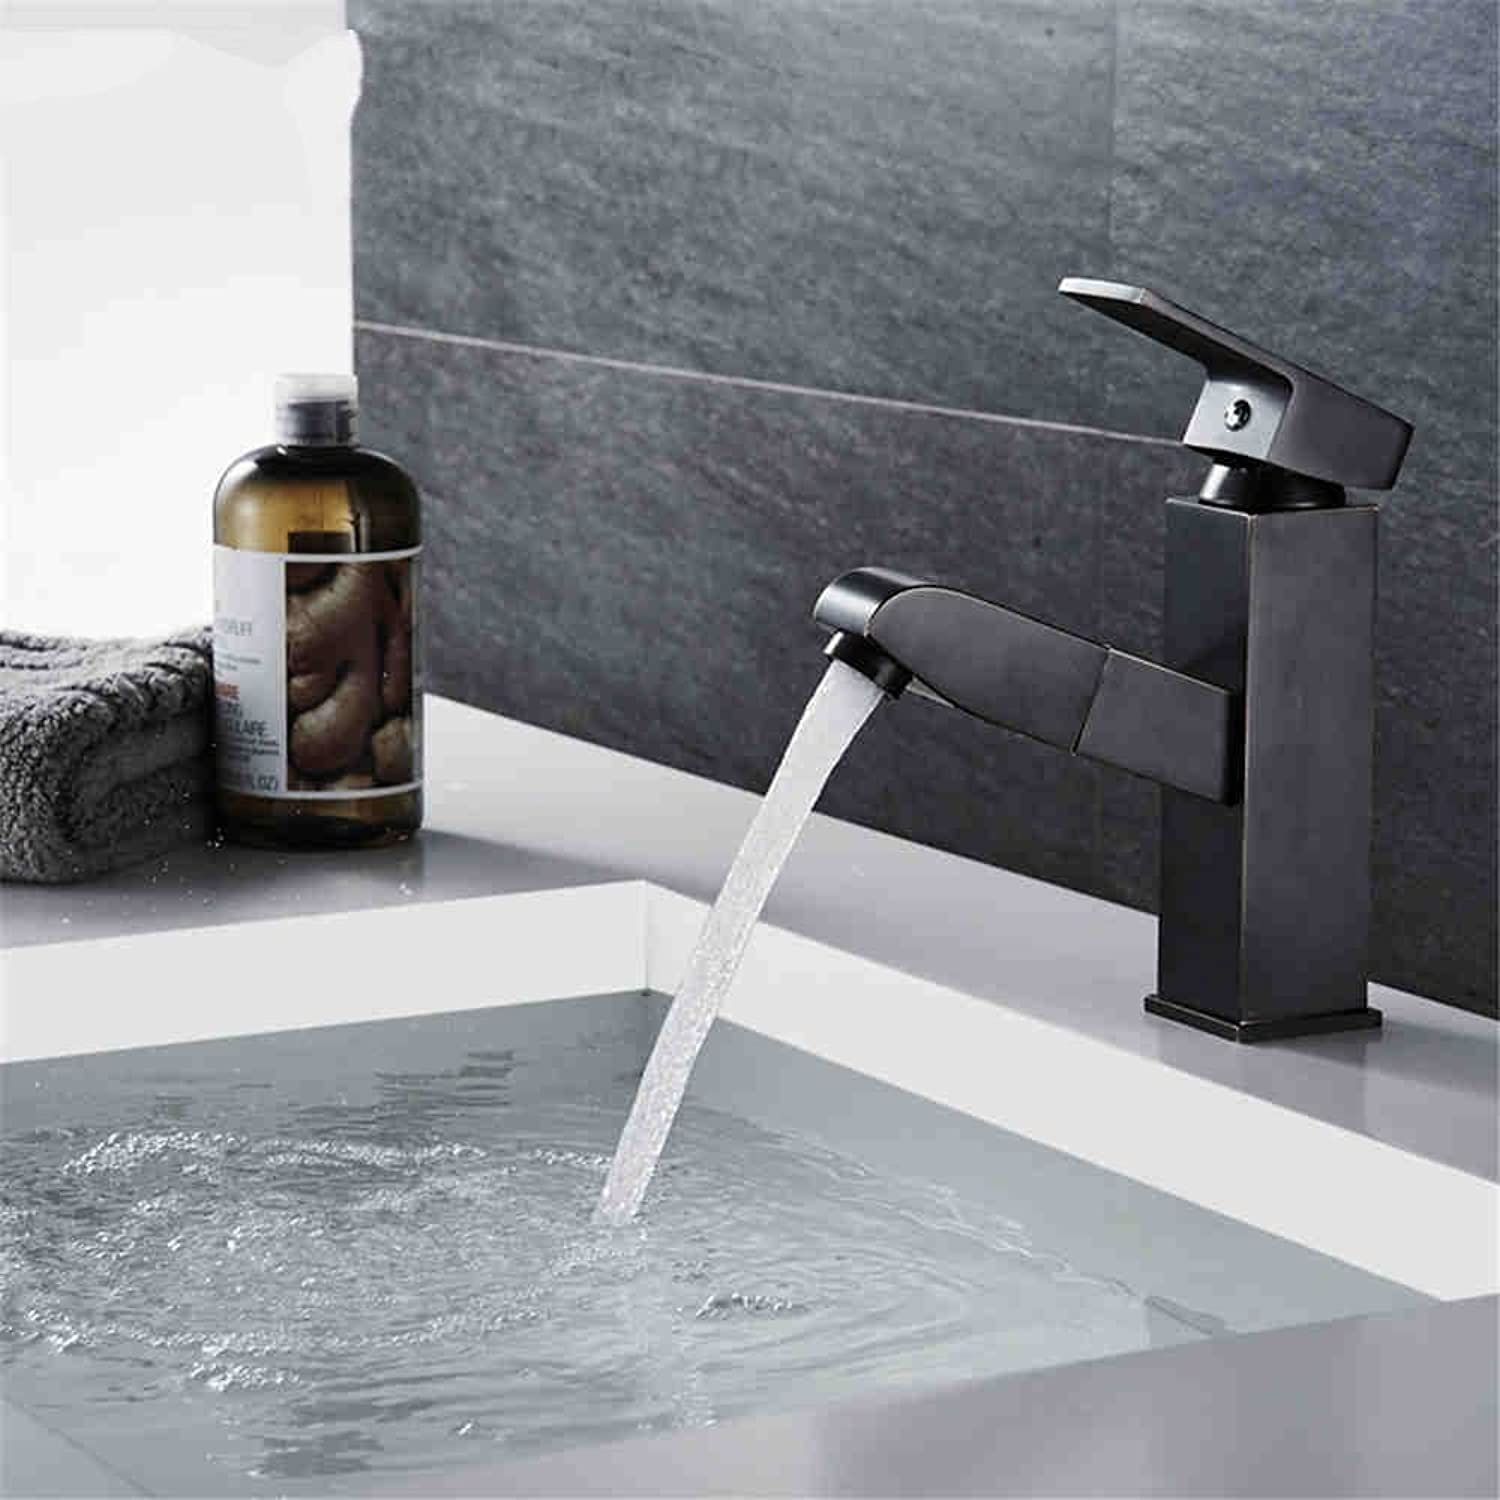 AQMMi Bathroom Sink Mixer Tap Brass Pull-Out Oil Rubbed Bronze Hot and Cold Water Extendable Single Lever Taps for Bathroom Sink